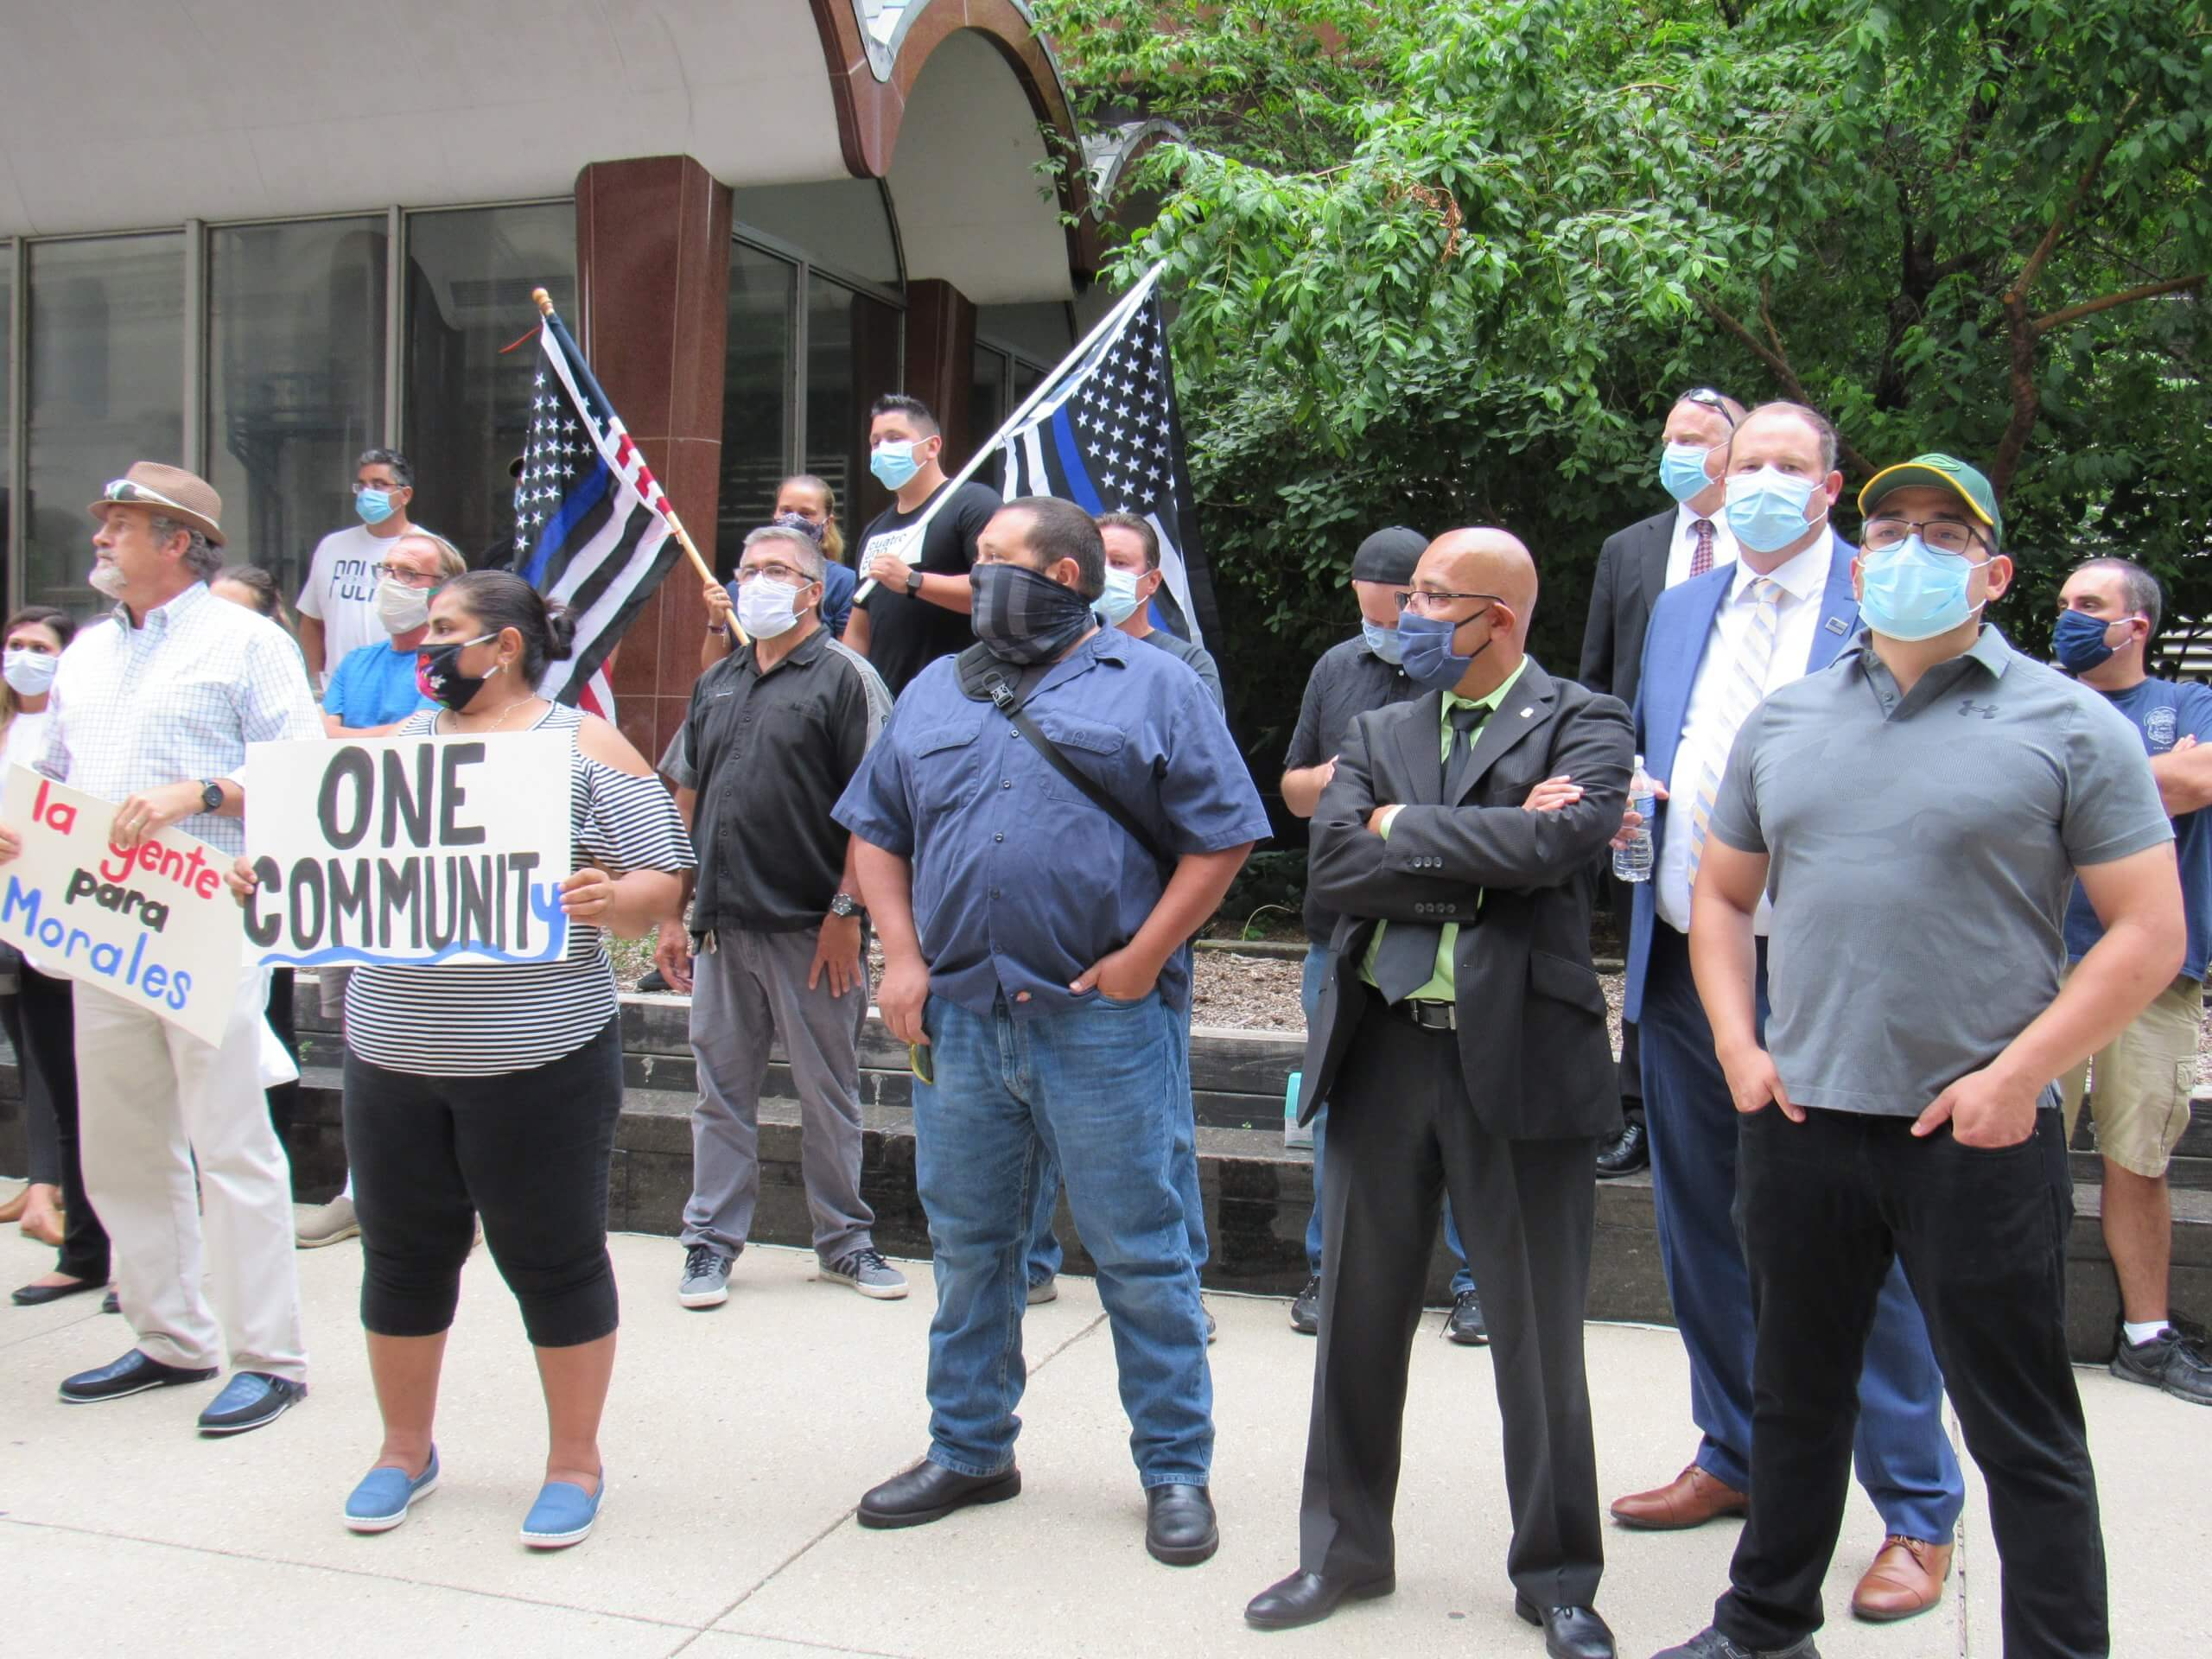 Blue Lives Matter counter-protesters stood in silence across from the Black Lives Matter protesters. Many appeared to be either current or former law enforcement. (Photo by Isiah Holmes)